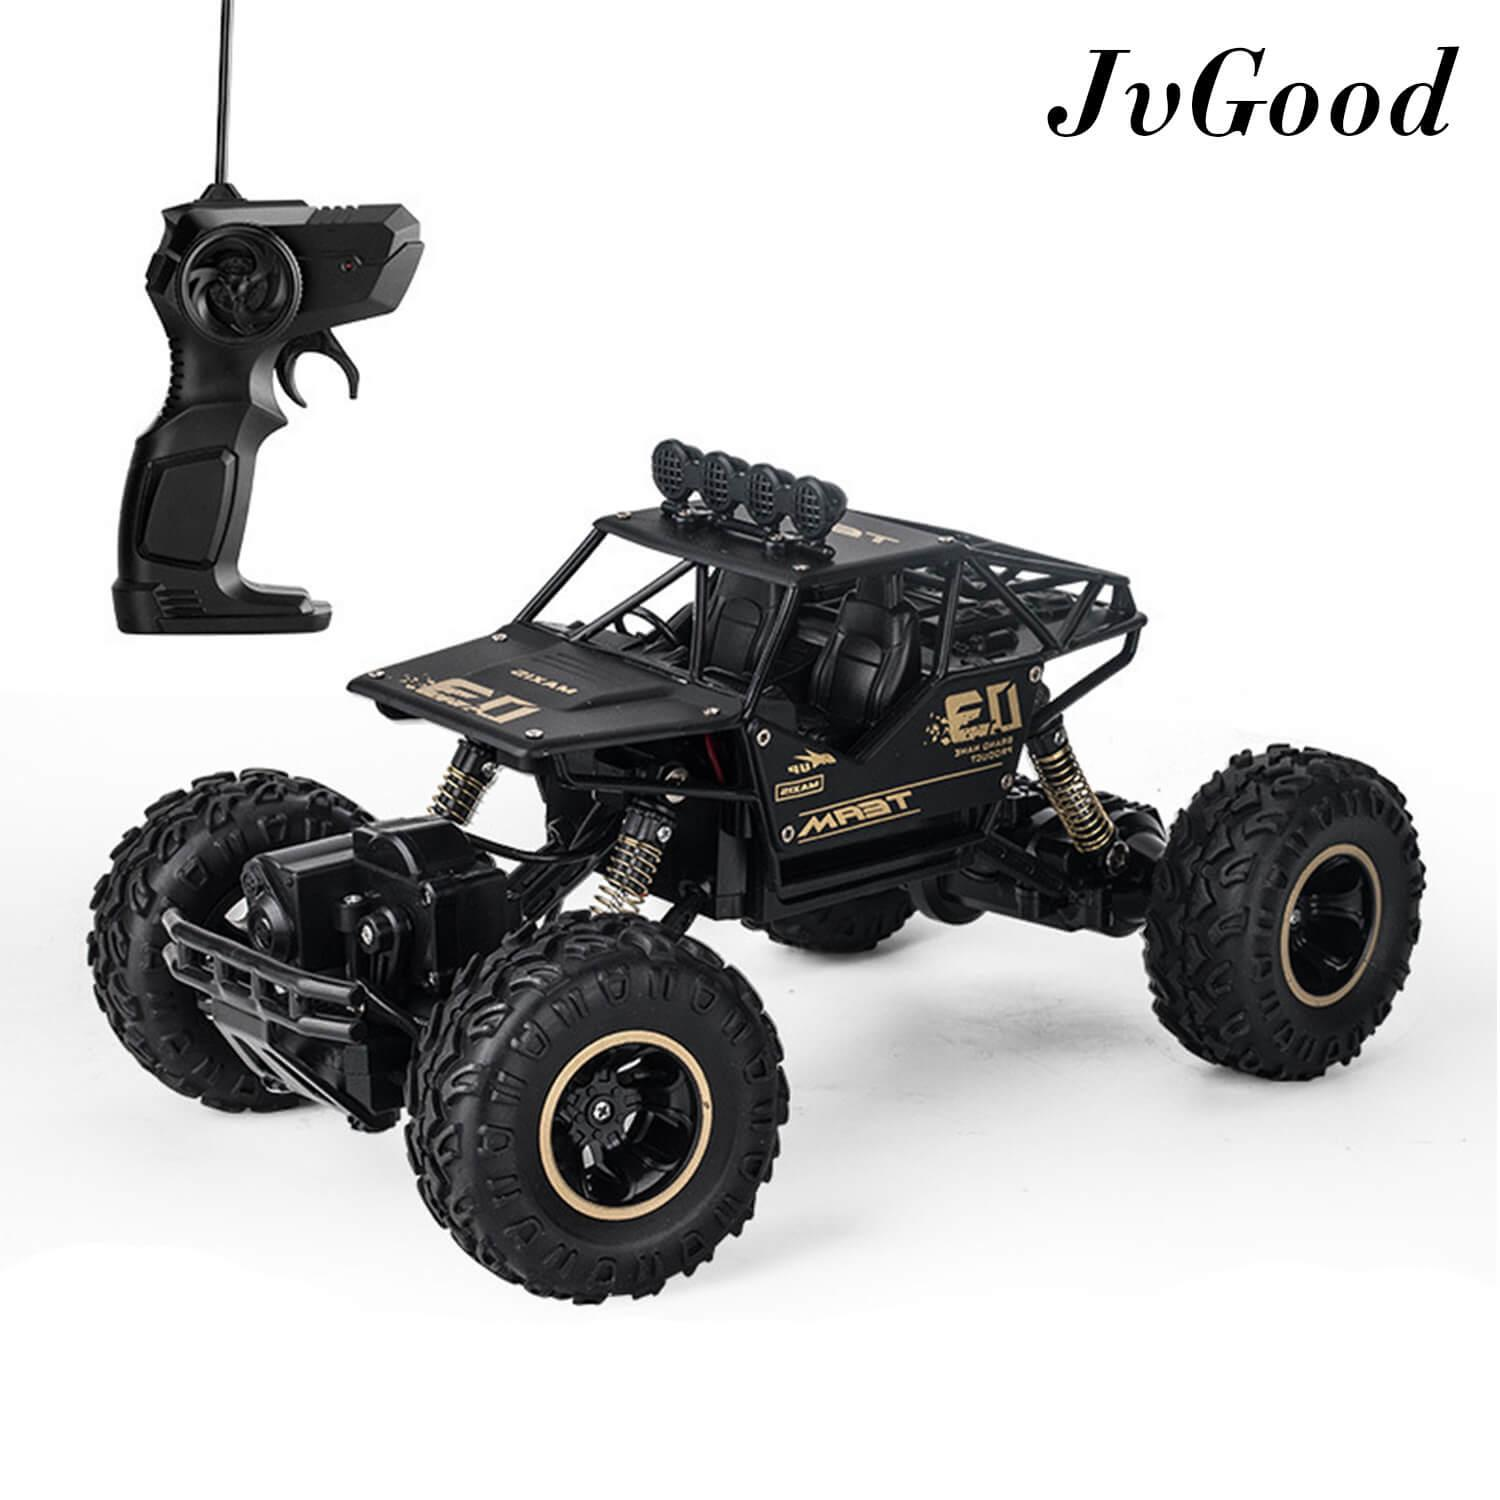 Rc Toys Vehicles For Sale Remote Control Cars Online 2010 8 7 Drift Real Circuit Youtube Jvgood Electric Vehicle Rock Crawler Alloyed Car Toy Radio Controlled Drive